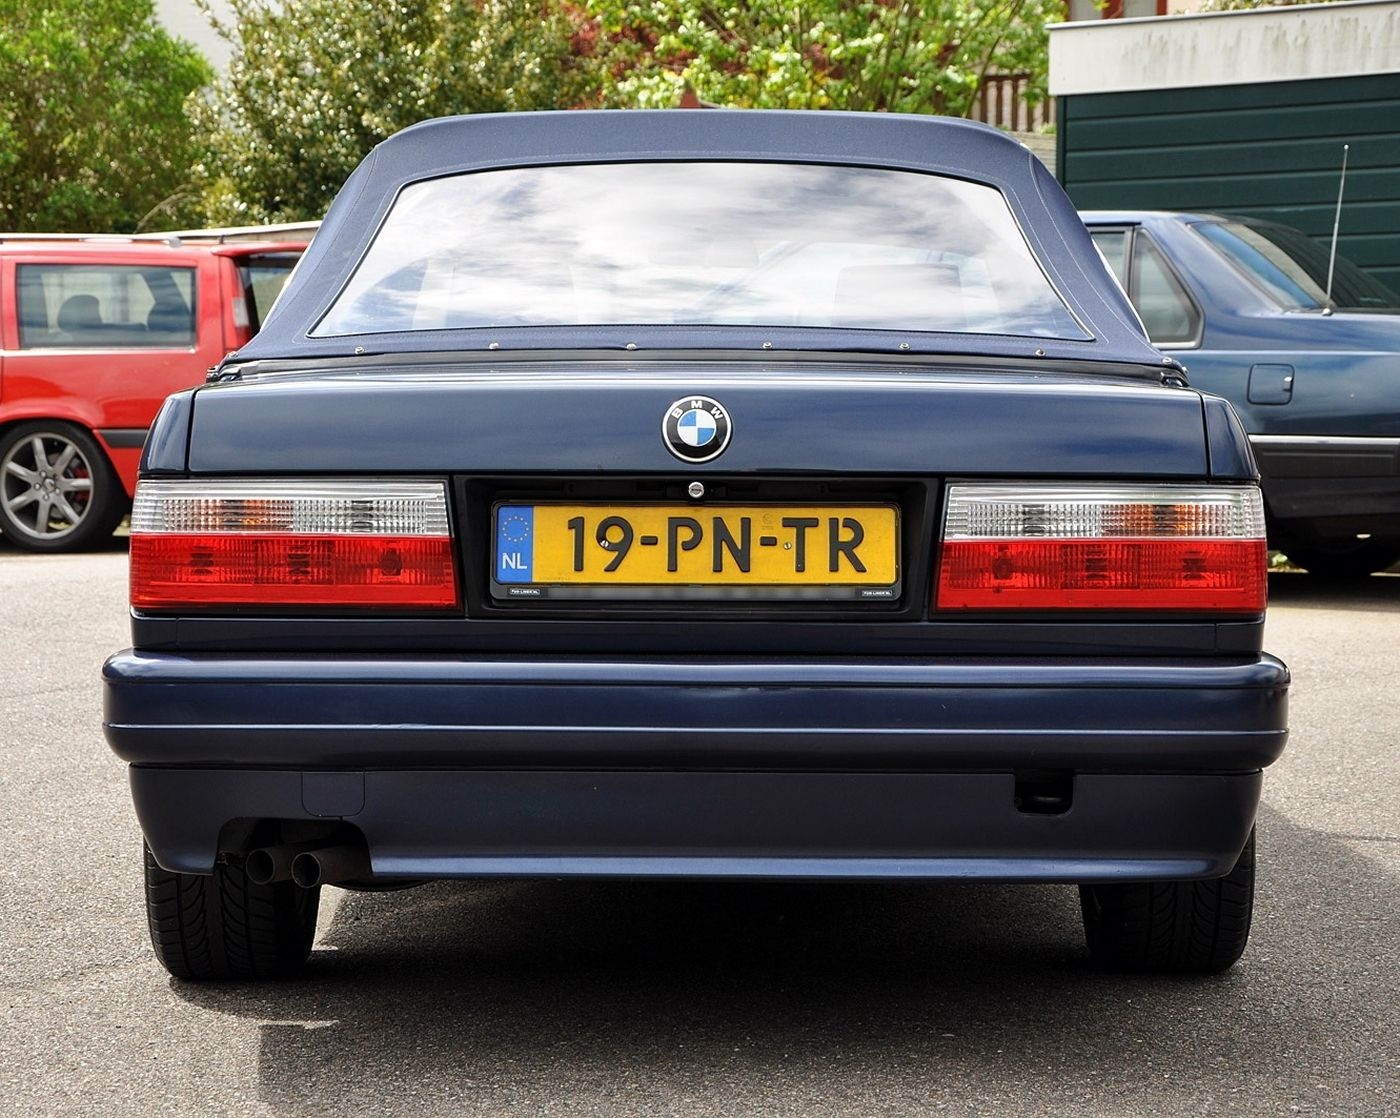 You can bookmark this page url http useddaewoocars blogspot de 2013 07 bmw 320i e30 baur cabriolet html